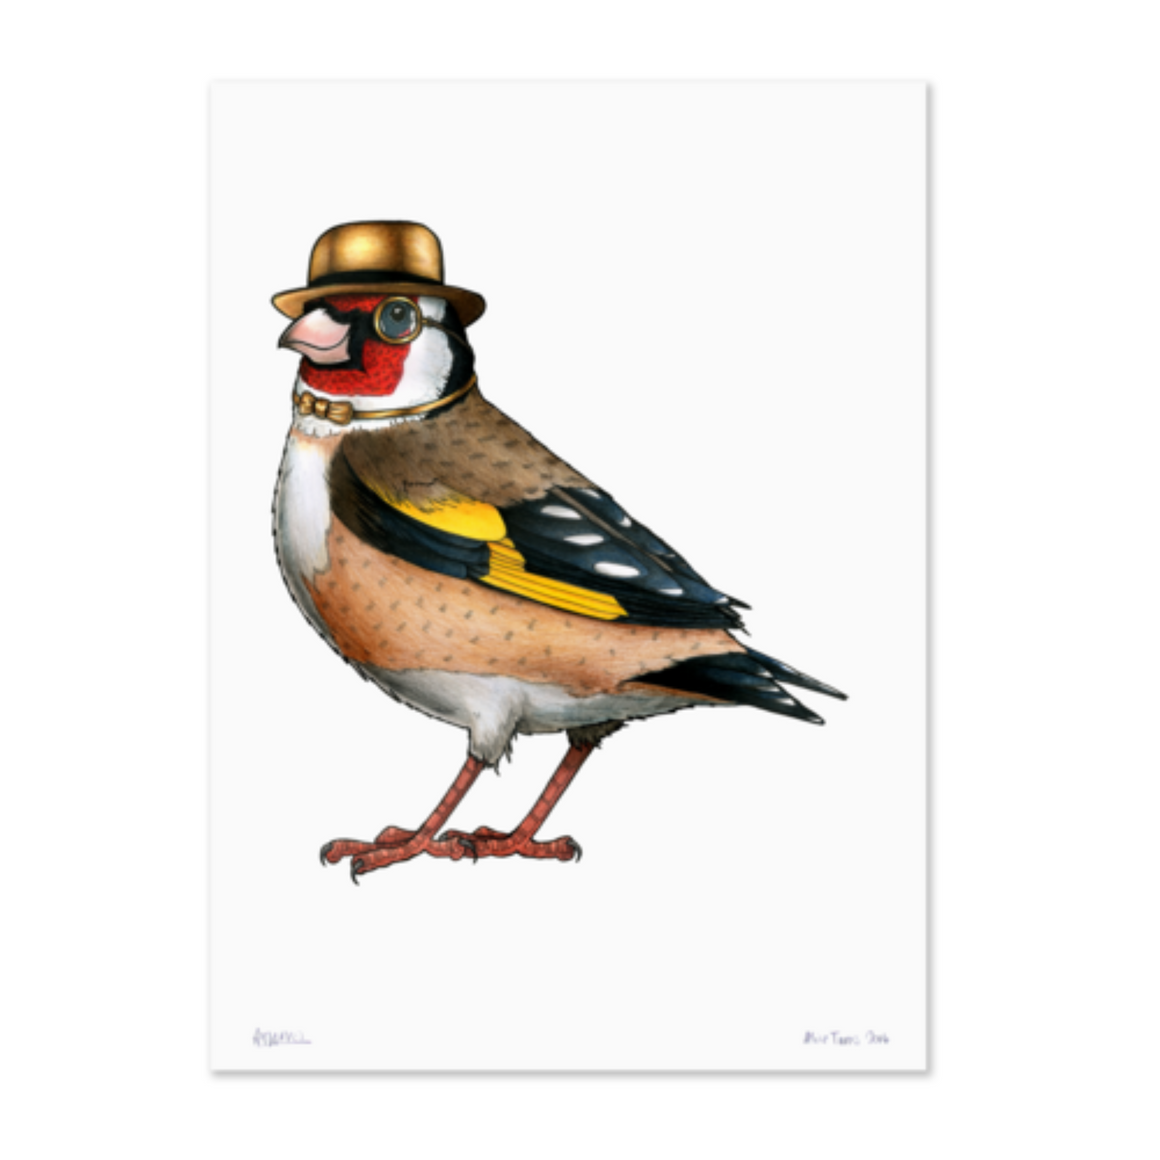 Birds In Hats Print - Goldfinch in a Gold Bowler Hat & Bow Tie A4